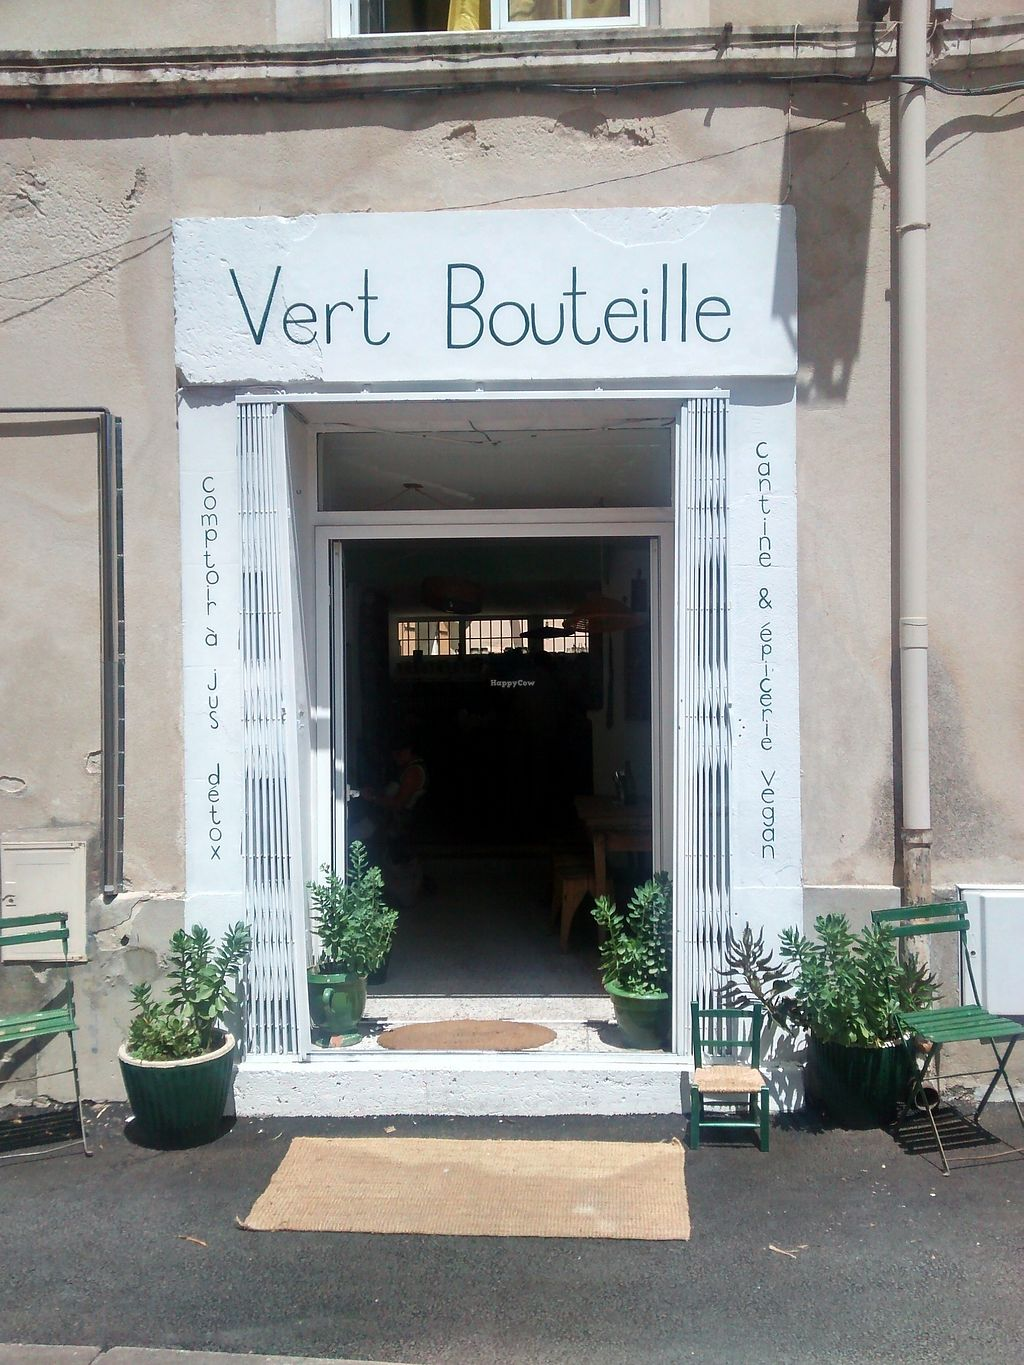 "Photo of Vert Bouteille  by <a href=""/members/profile/JS123"">JS123</a> <br/>Vert Bouteille, L'Isle sur la Sorgue <br/> July 8, 2017  - <a href='/contact/abuse/image/95465/277812'>Report</a>"